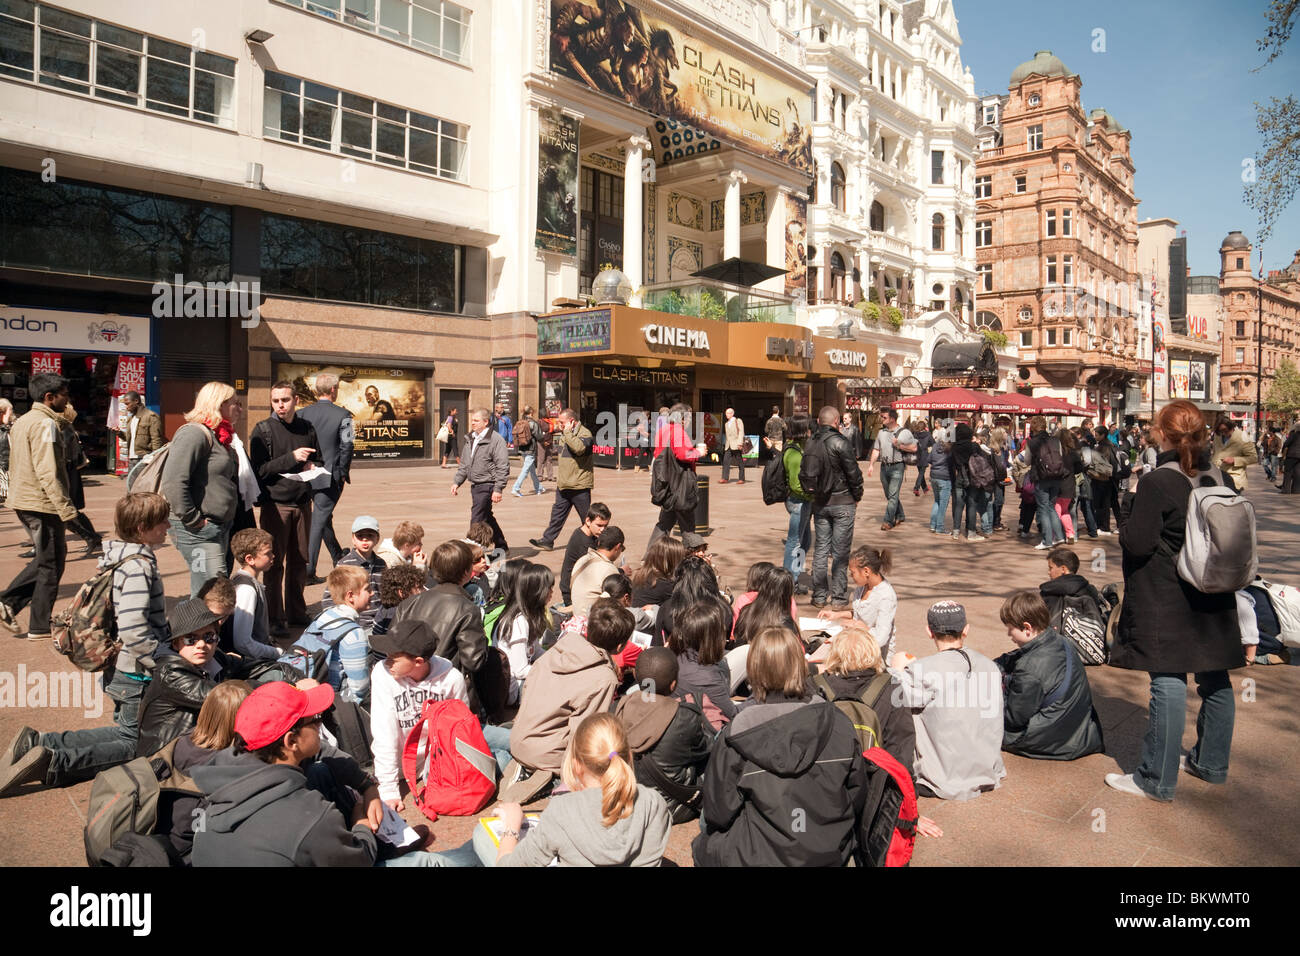 Teenagers sitting in the sunshine, Leicester Square, London UK - Stock Image